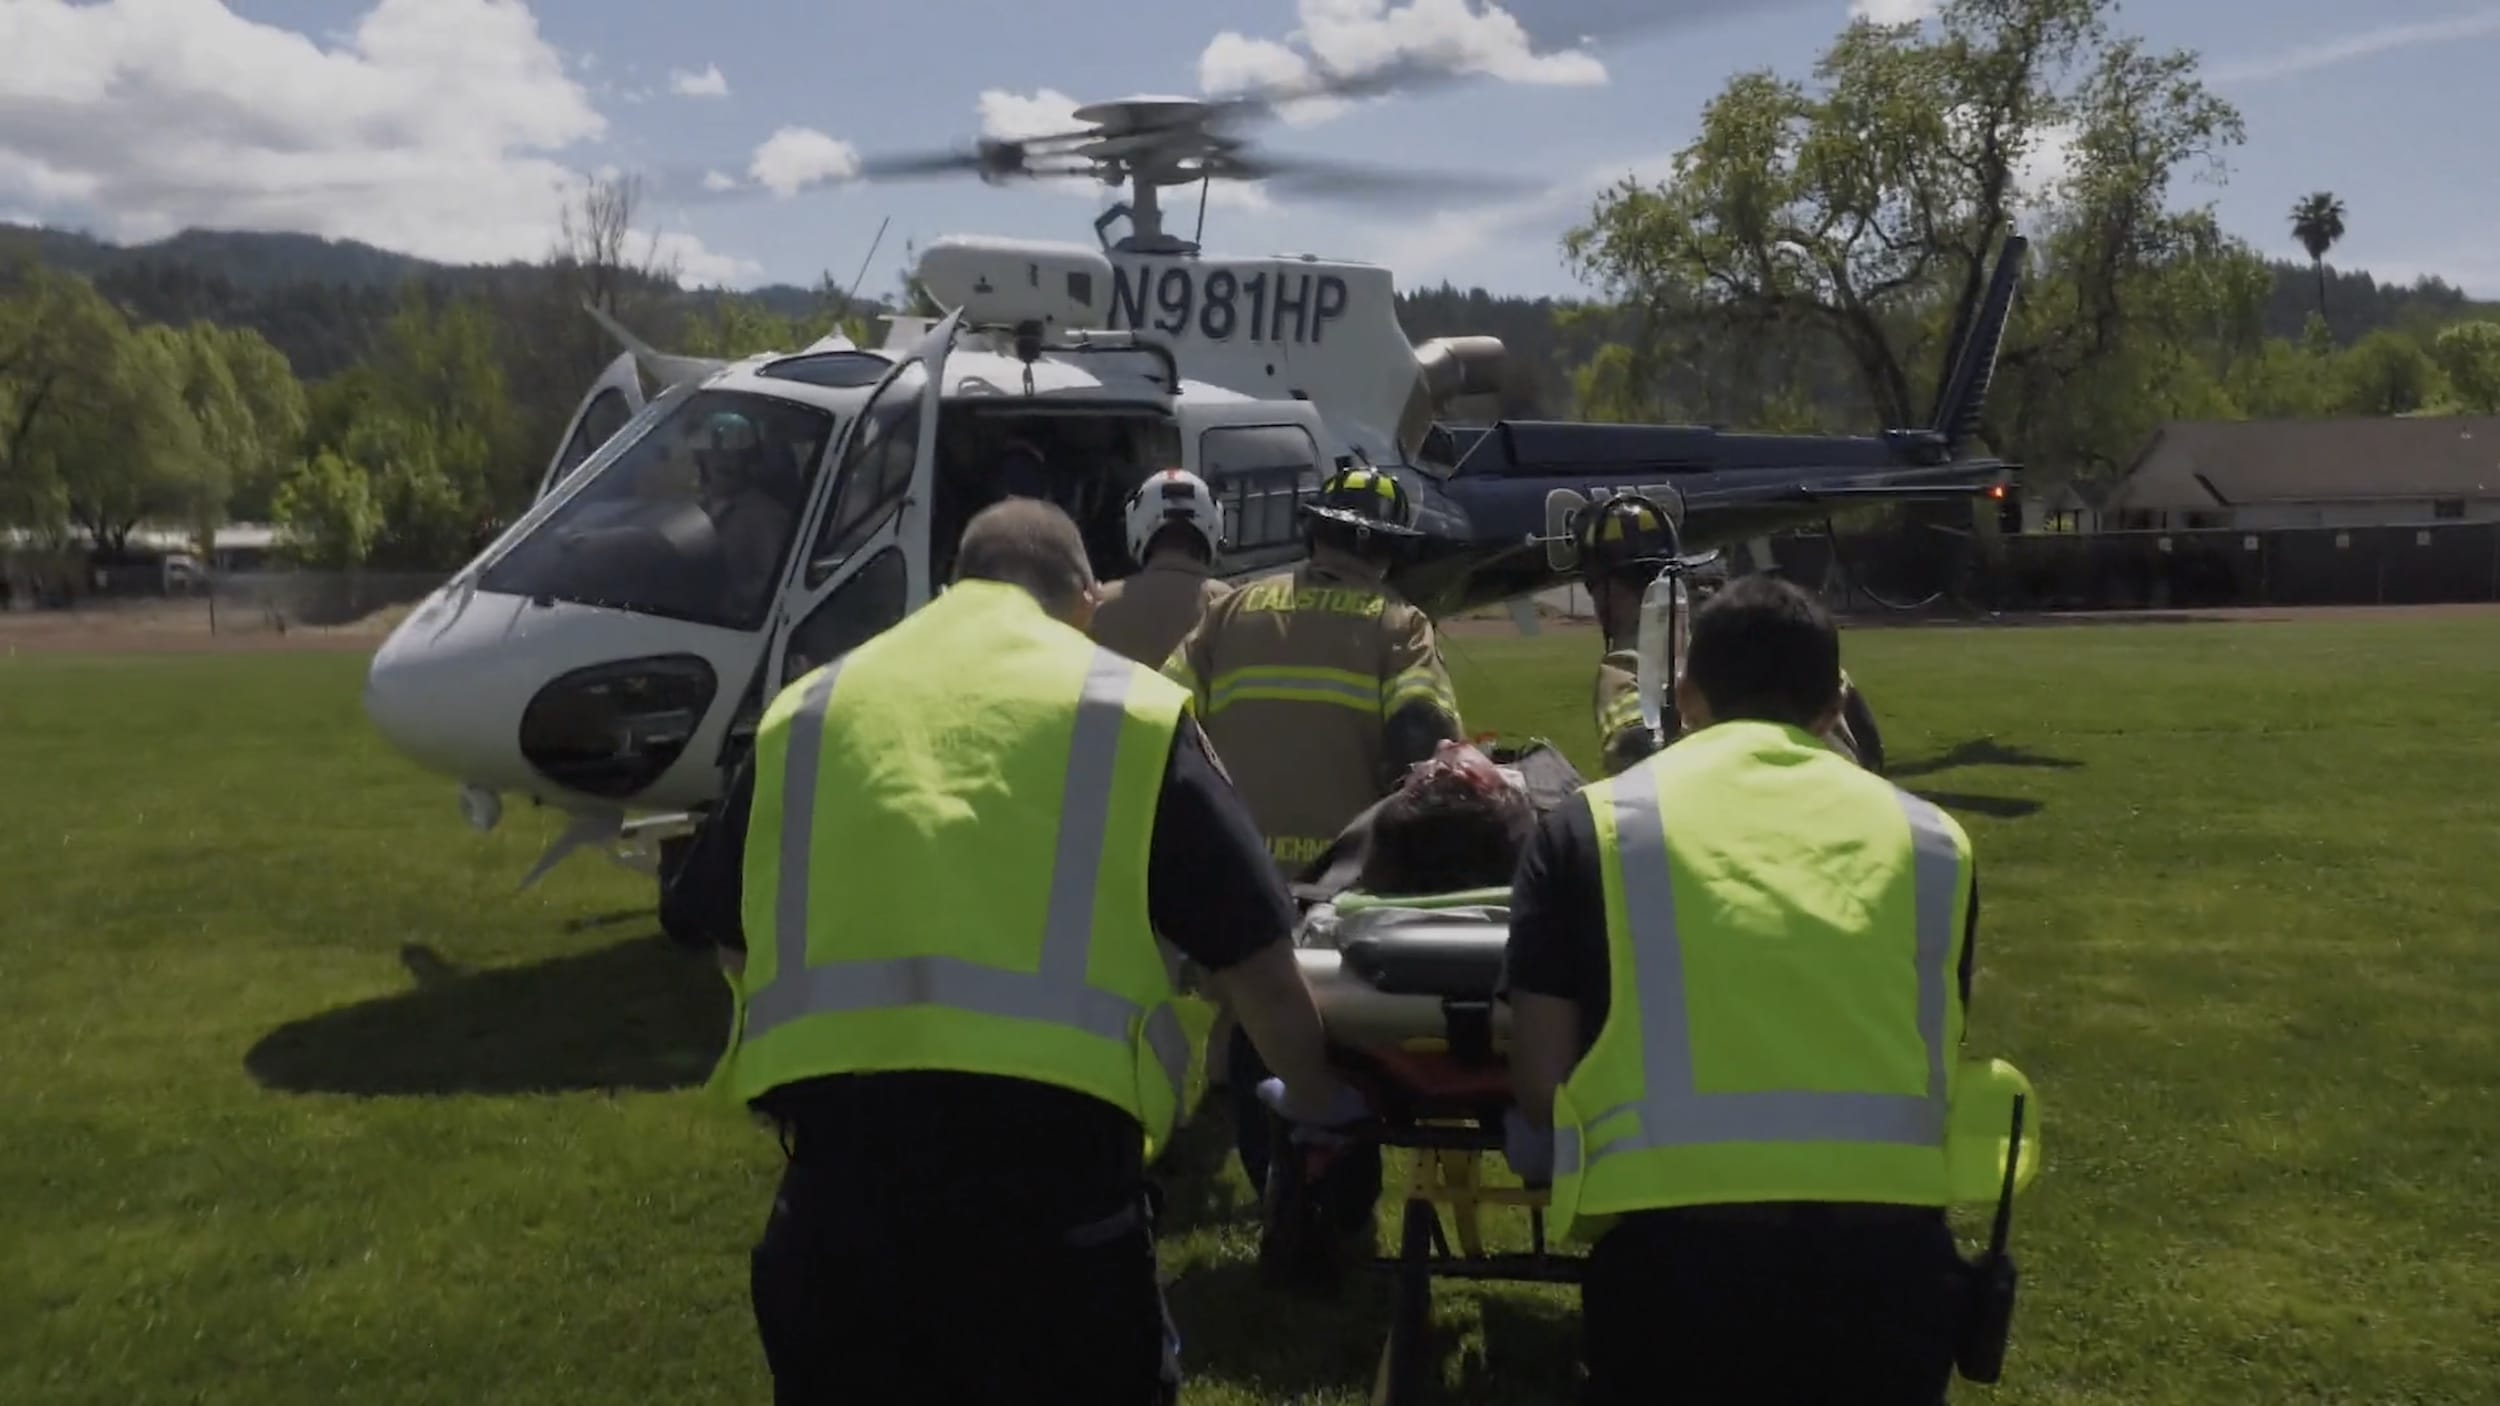 Sabrina being wheeled to an awaiting emergency helicopter